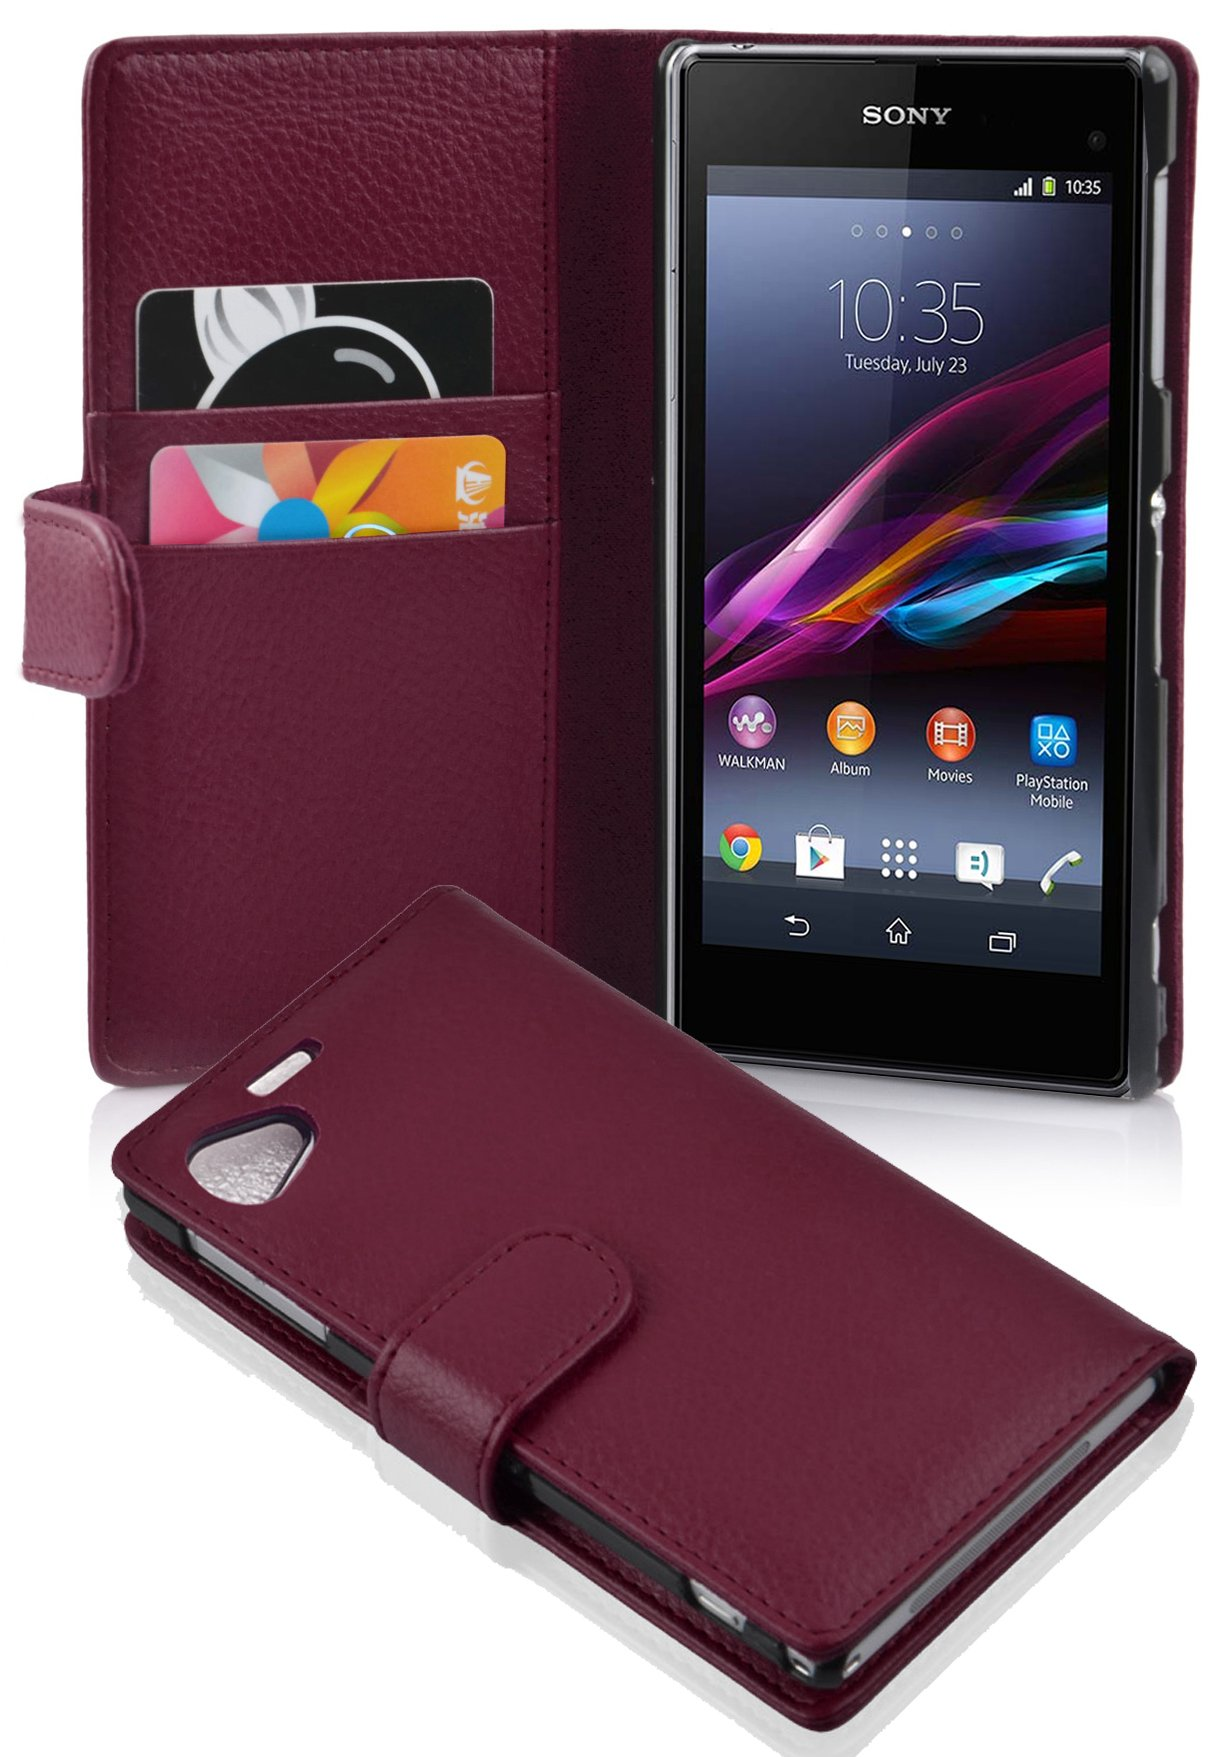 Cadorabo Case Works with Sony Xperia Z1 Compact